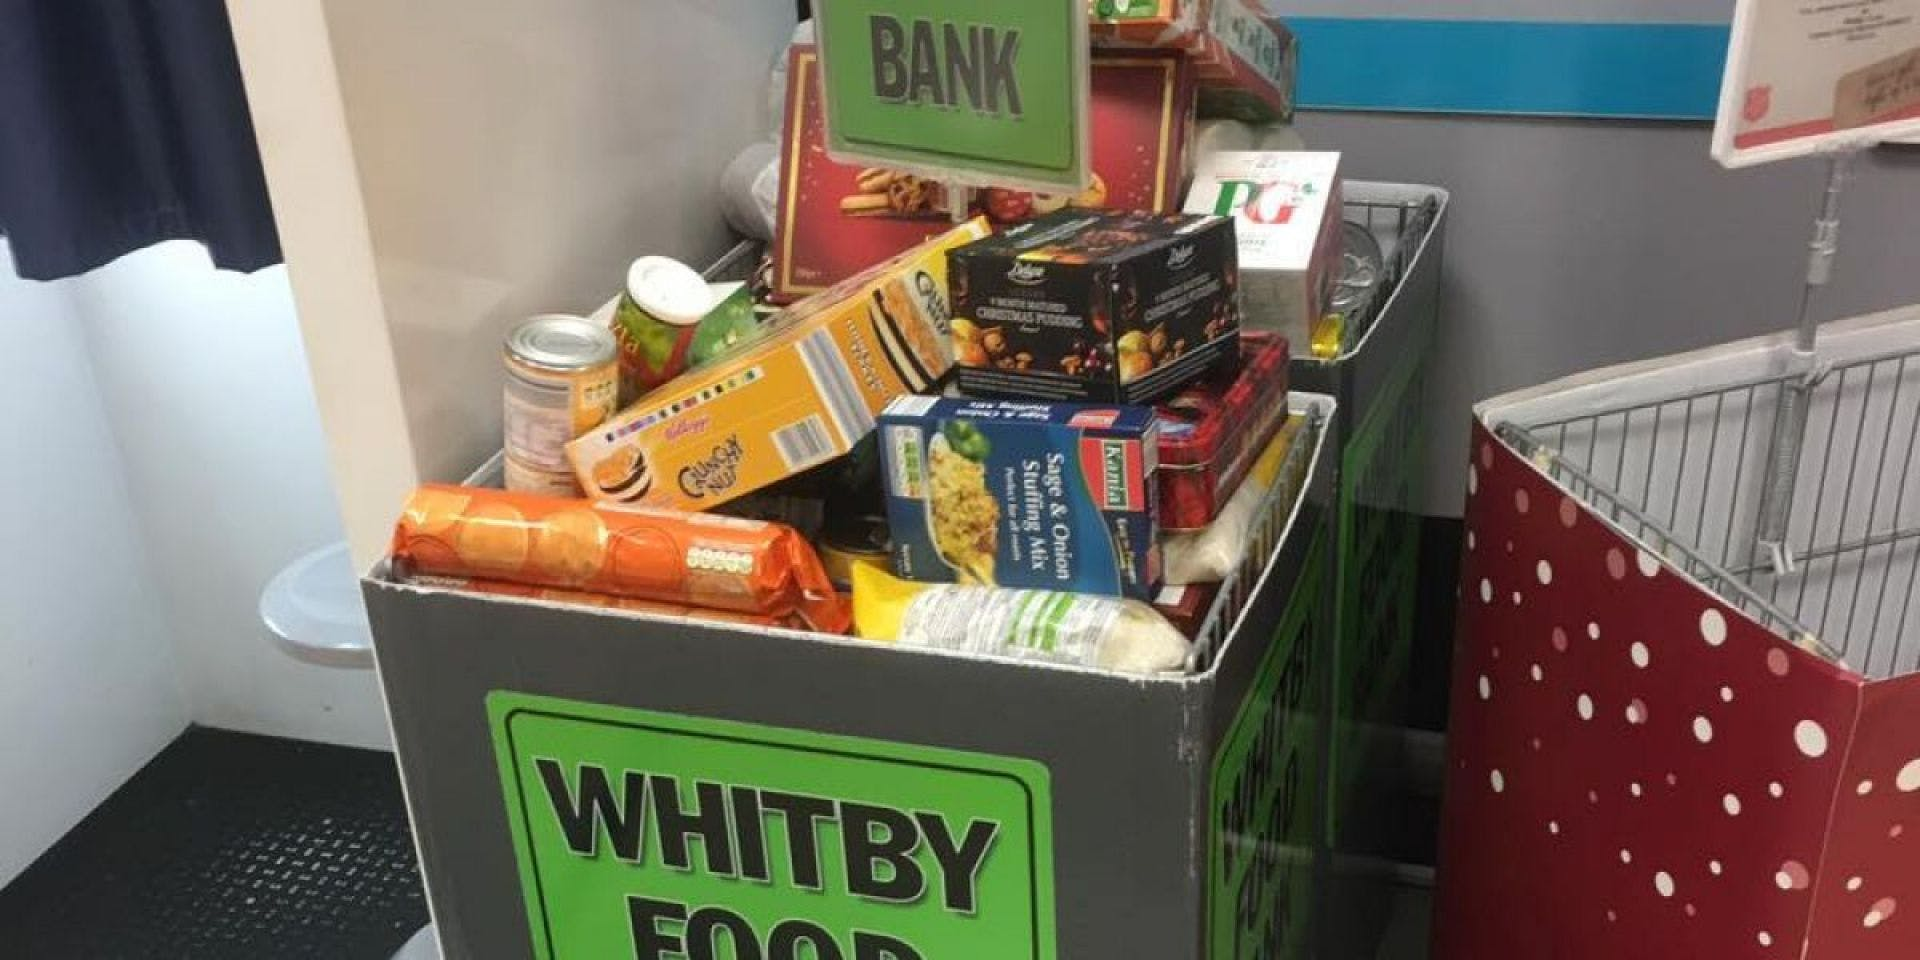 Foodbank4Whitby